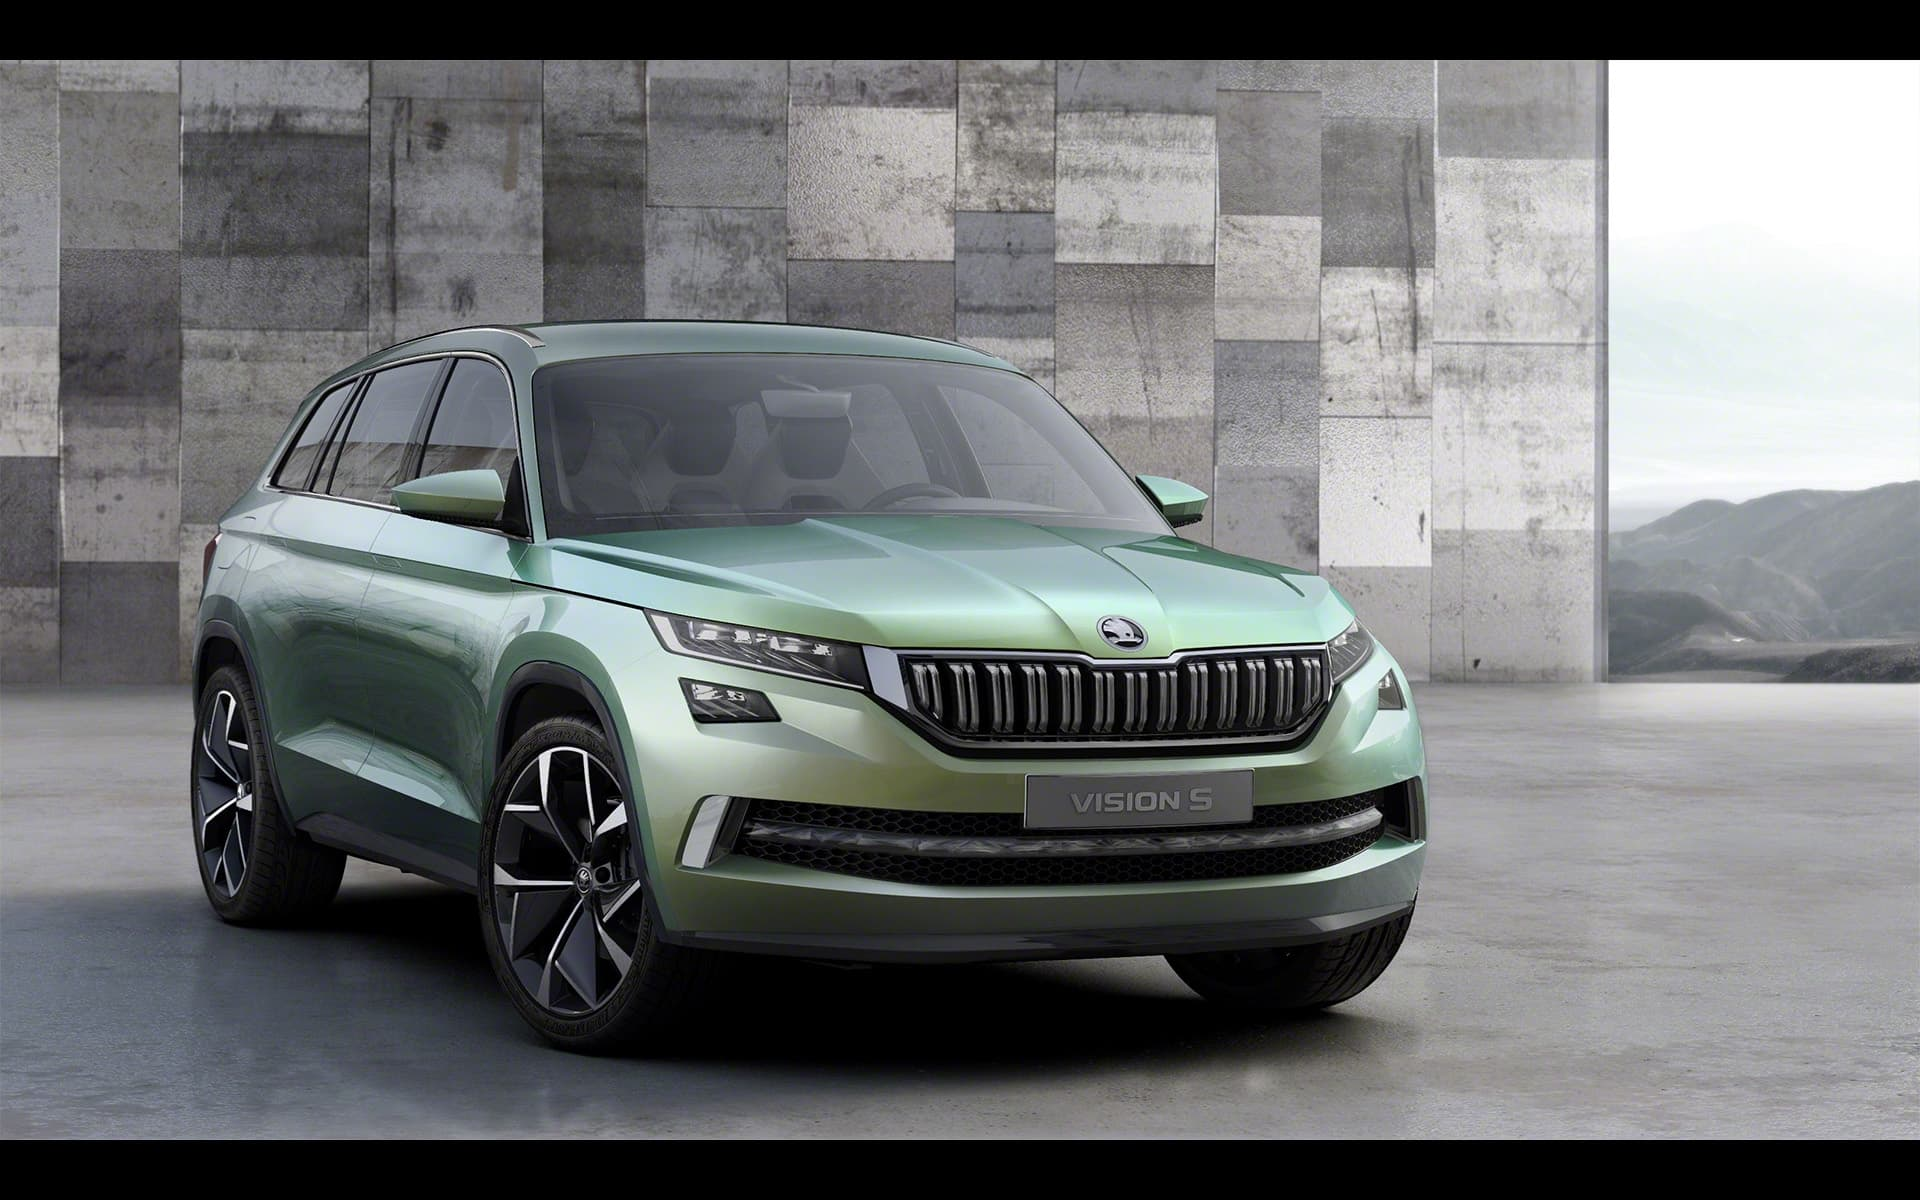 Wallpaper Skoda Vision S 2016 Green Concept SUV Widescreen